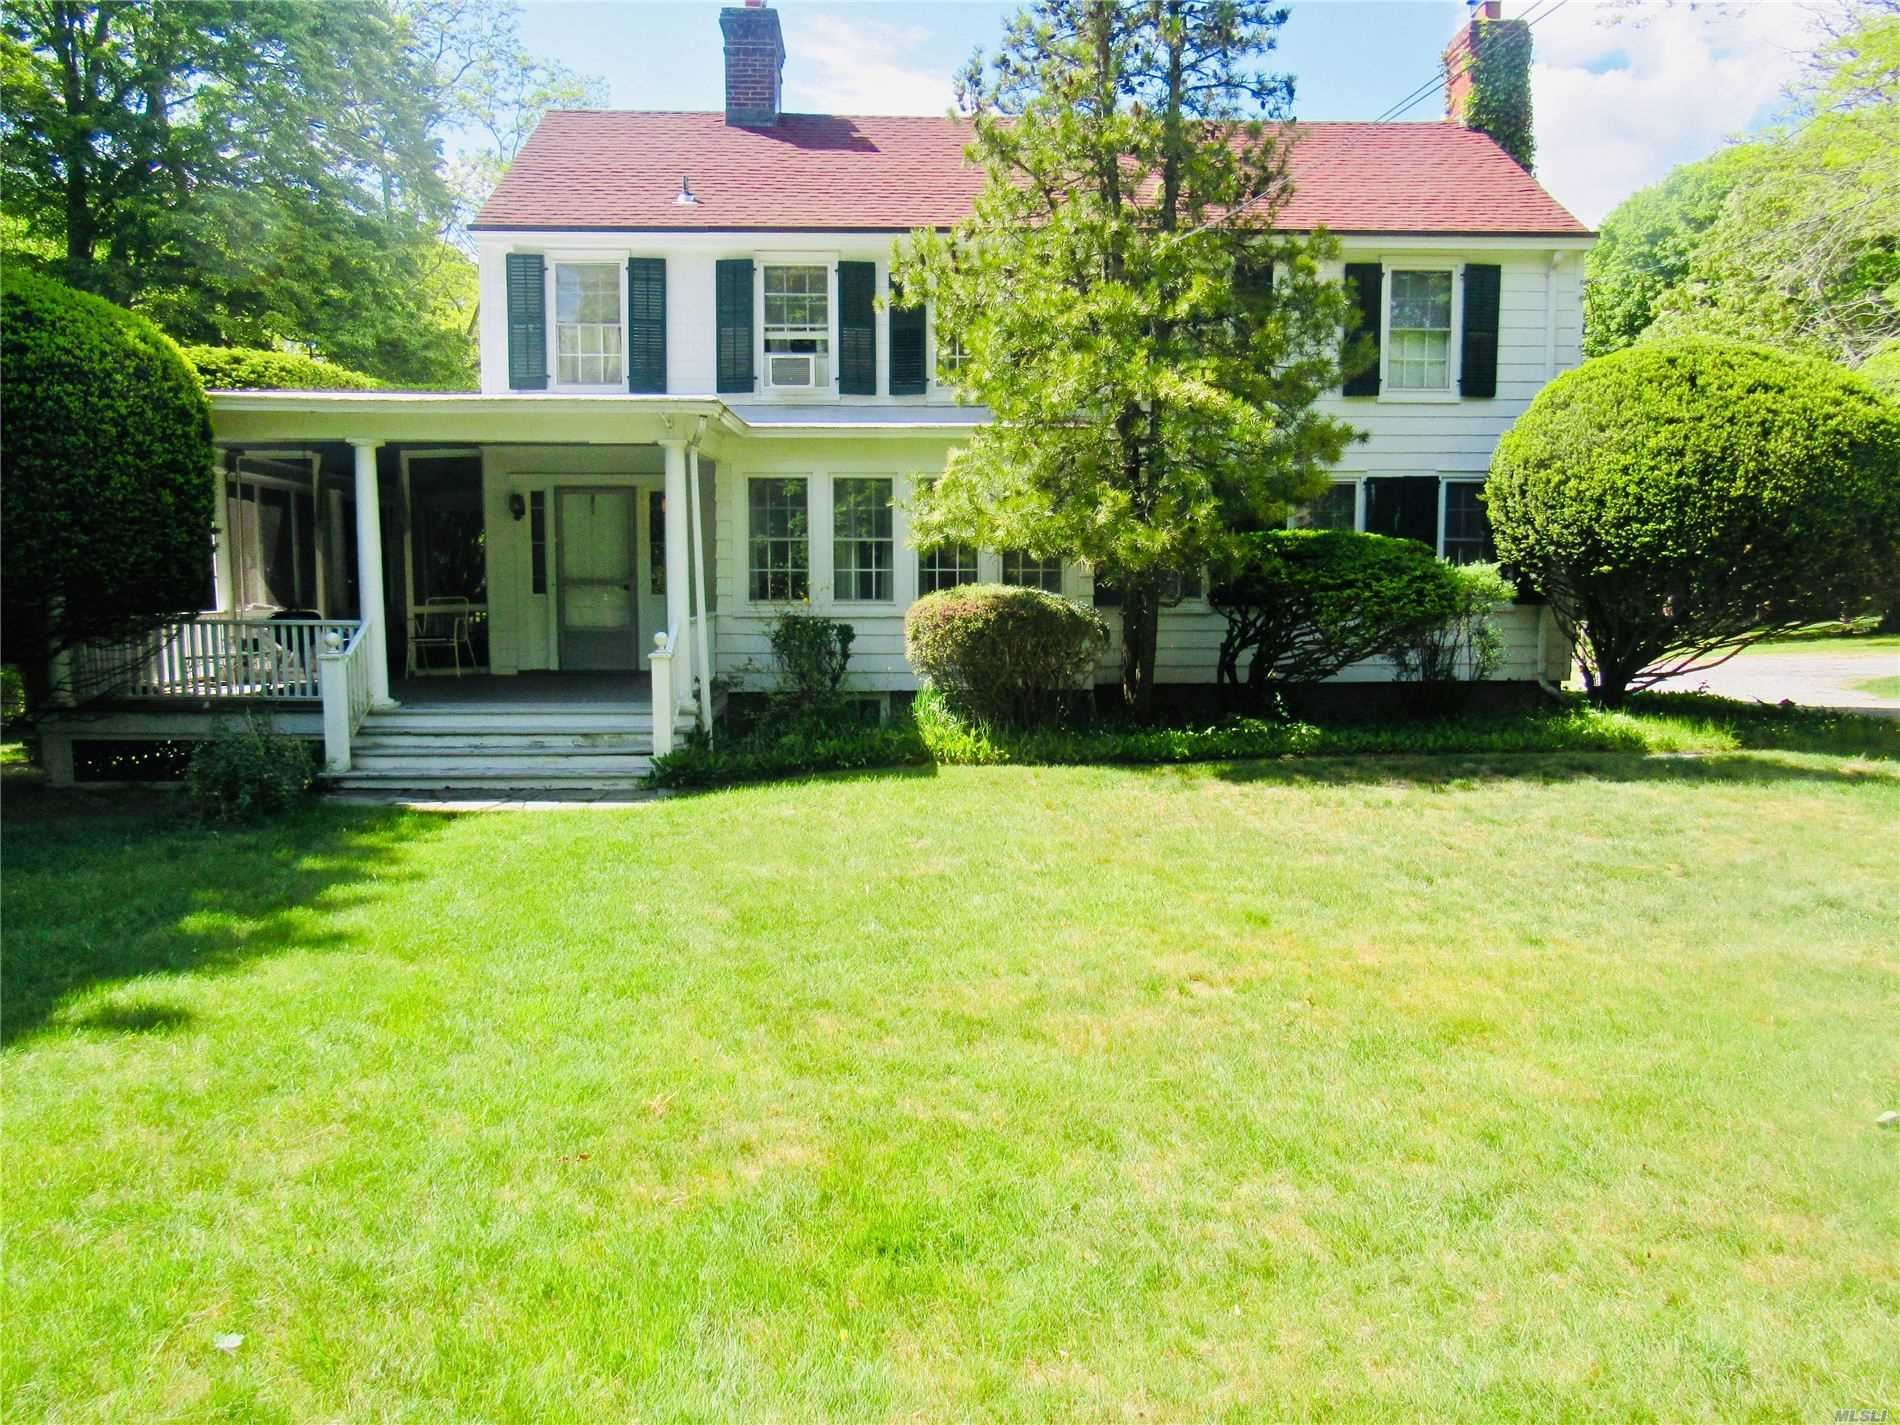 245 S Country Rd, Bellport, NY 11713 - MLS#: 3219400